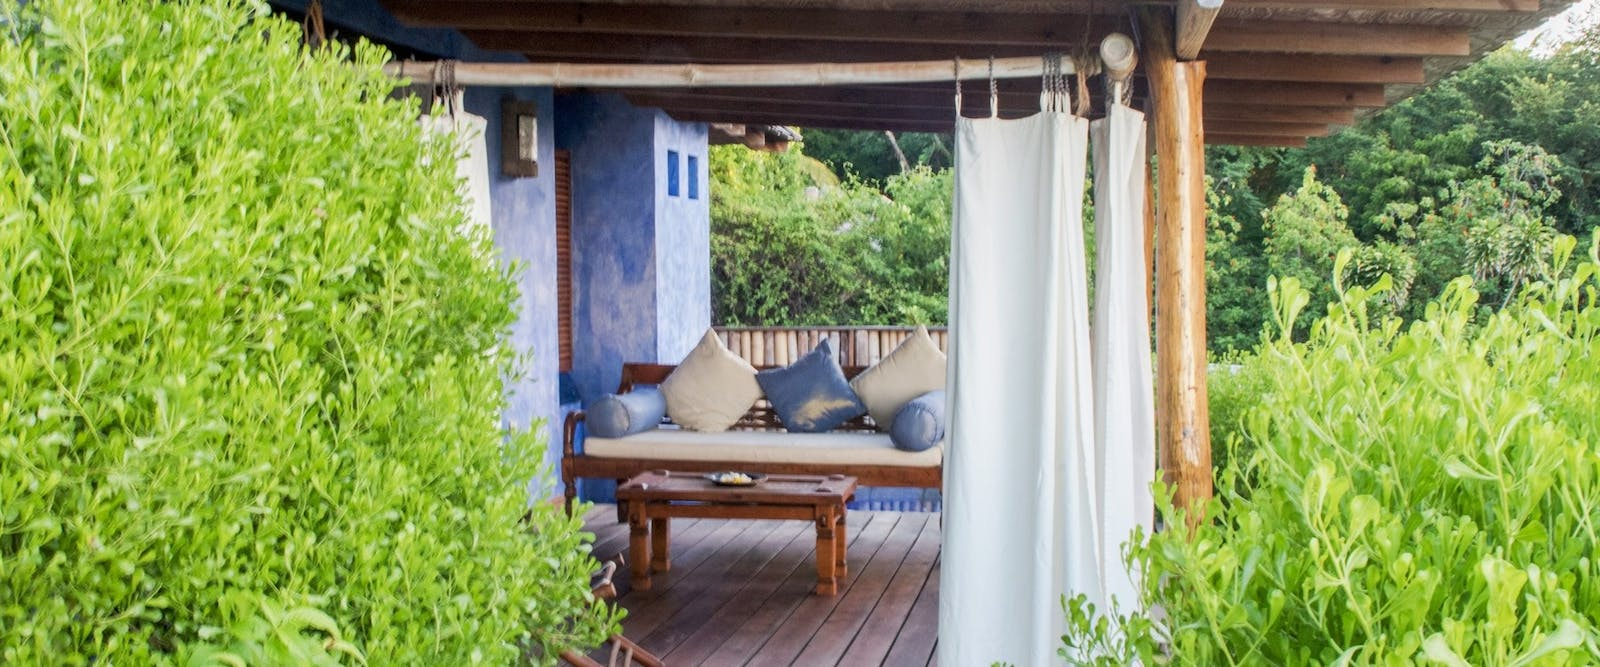 Deluxe Cottages at Laluna Grenada